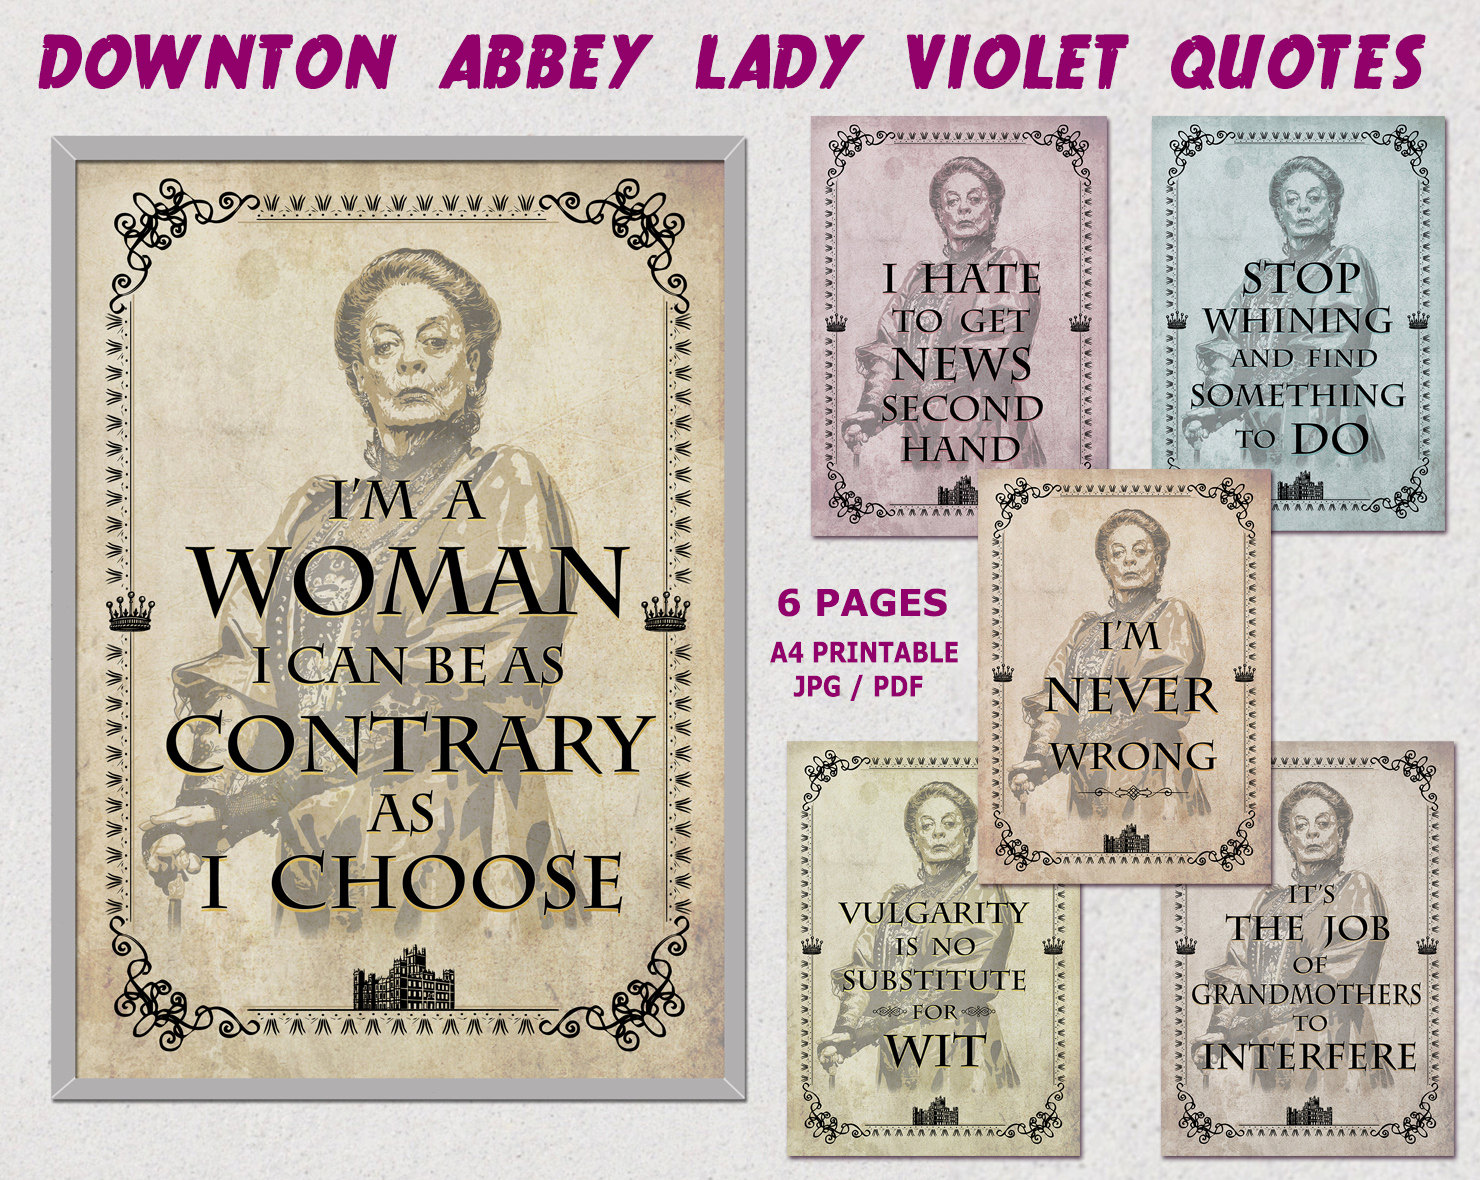 Downton abbey party violet crawley quotes downton abbey zoom monicamarmolfo Image collections